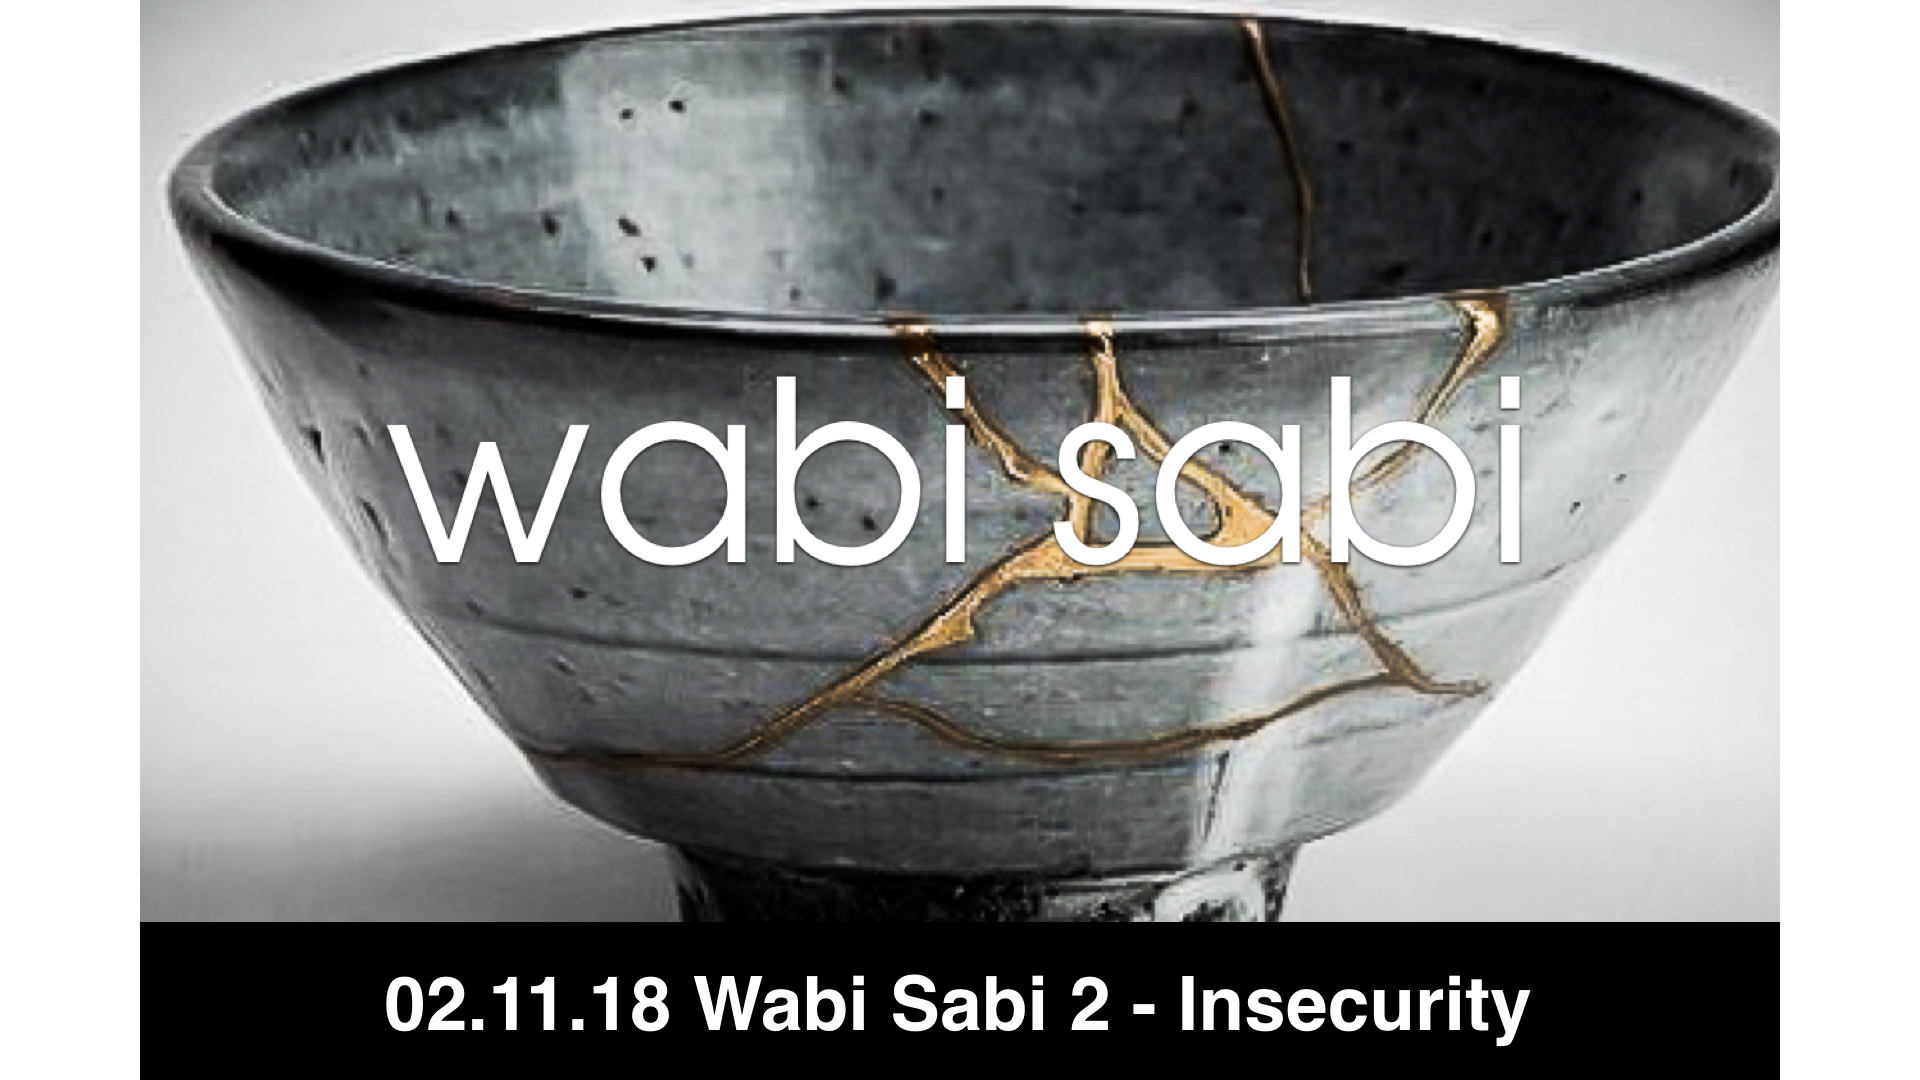 02.11.18 Wabi Sabi 2 - Insecurity